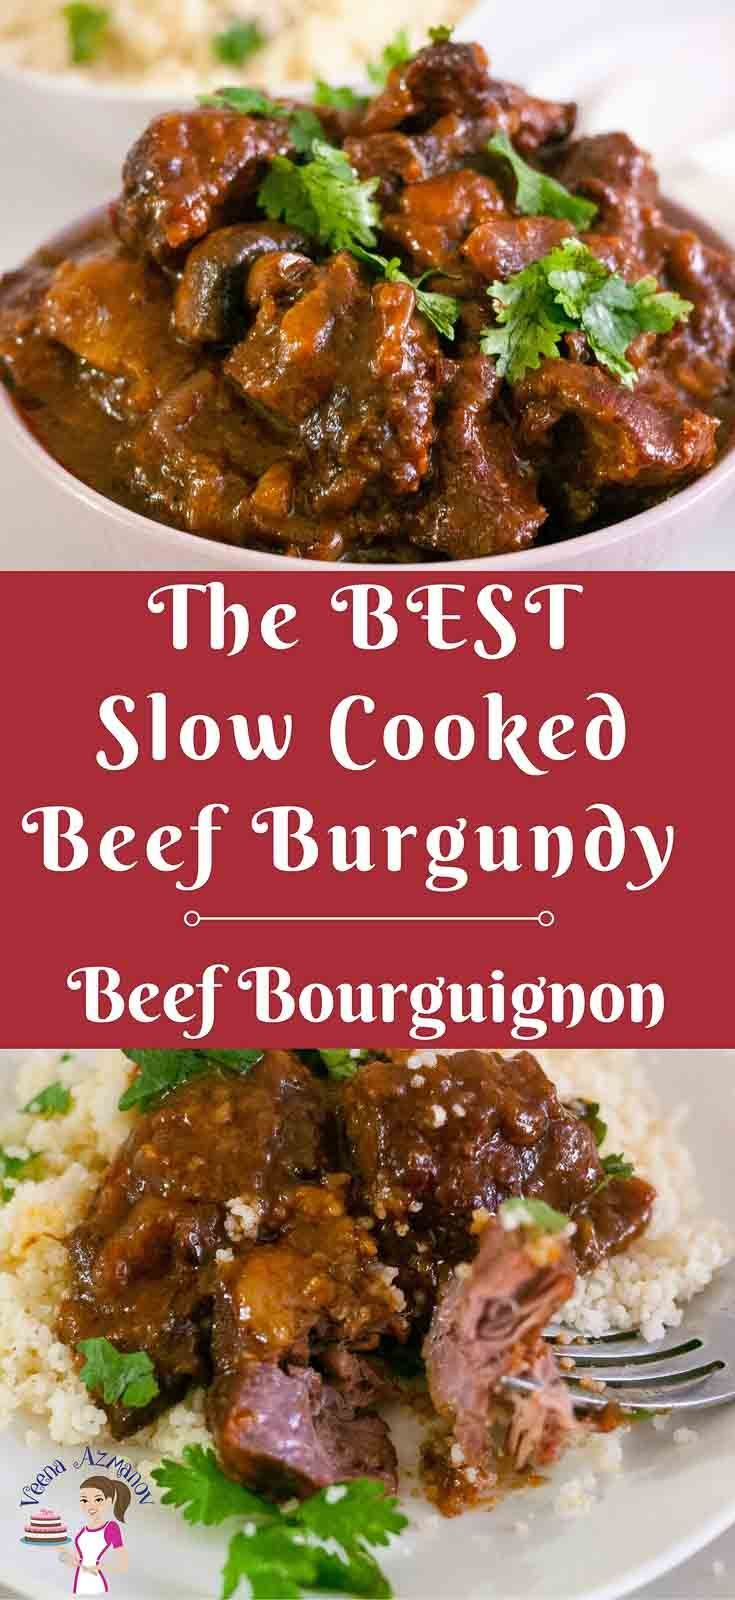 This Beef Burgundy Or Beef Bourguignon Is The Ultimate French Comfort Food Chunks Of Beef Piece Beef Bourguignon Beef Chunks Recipes Beef Burgundy Slow Cooker